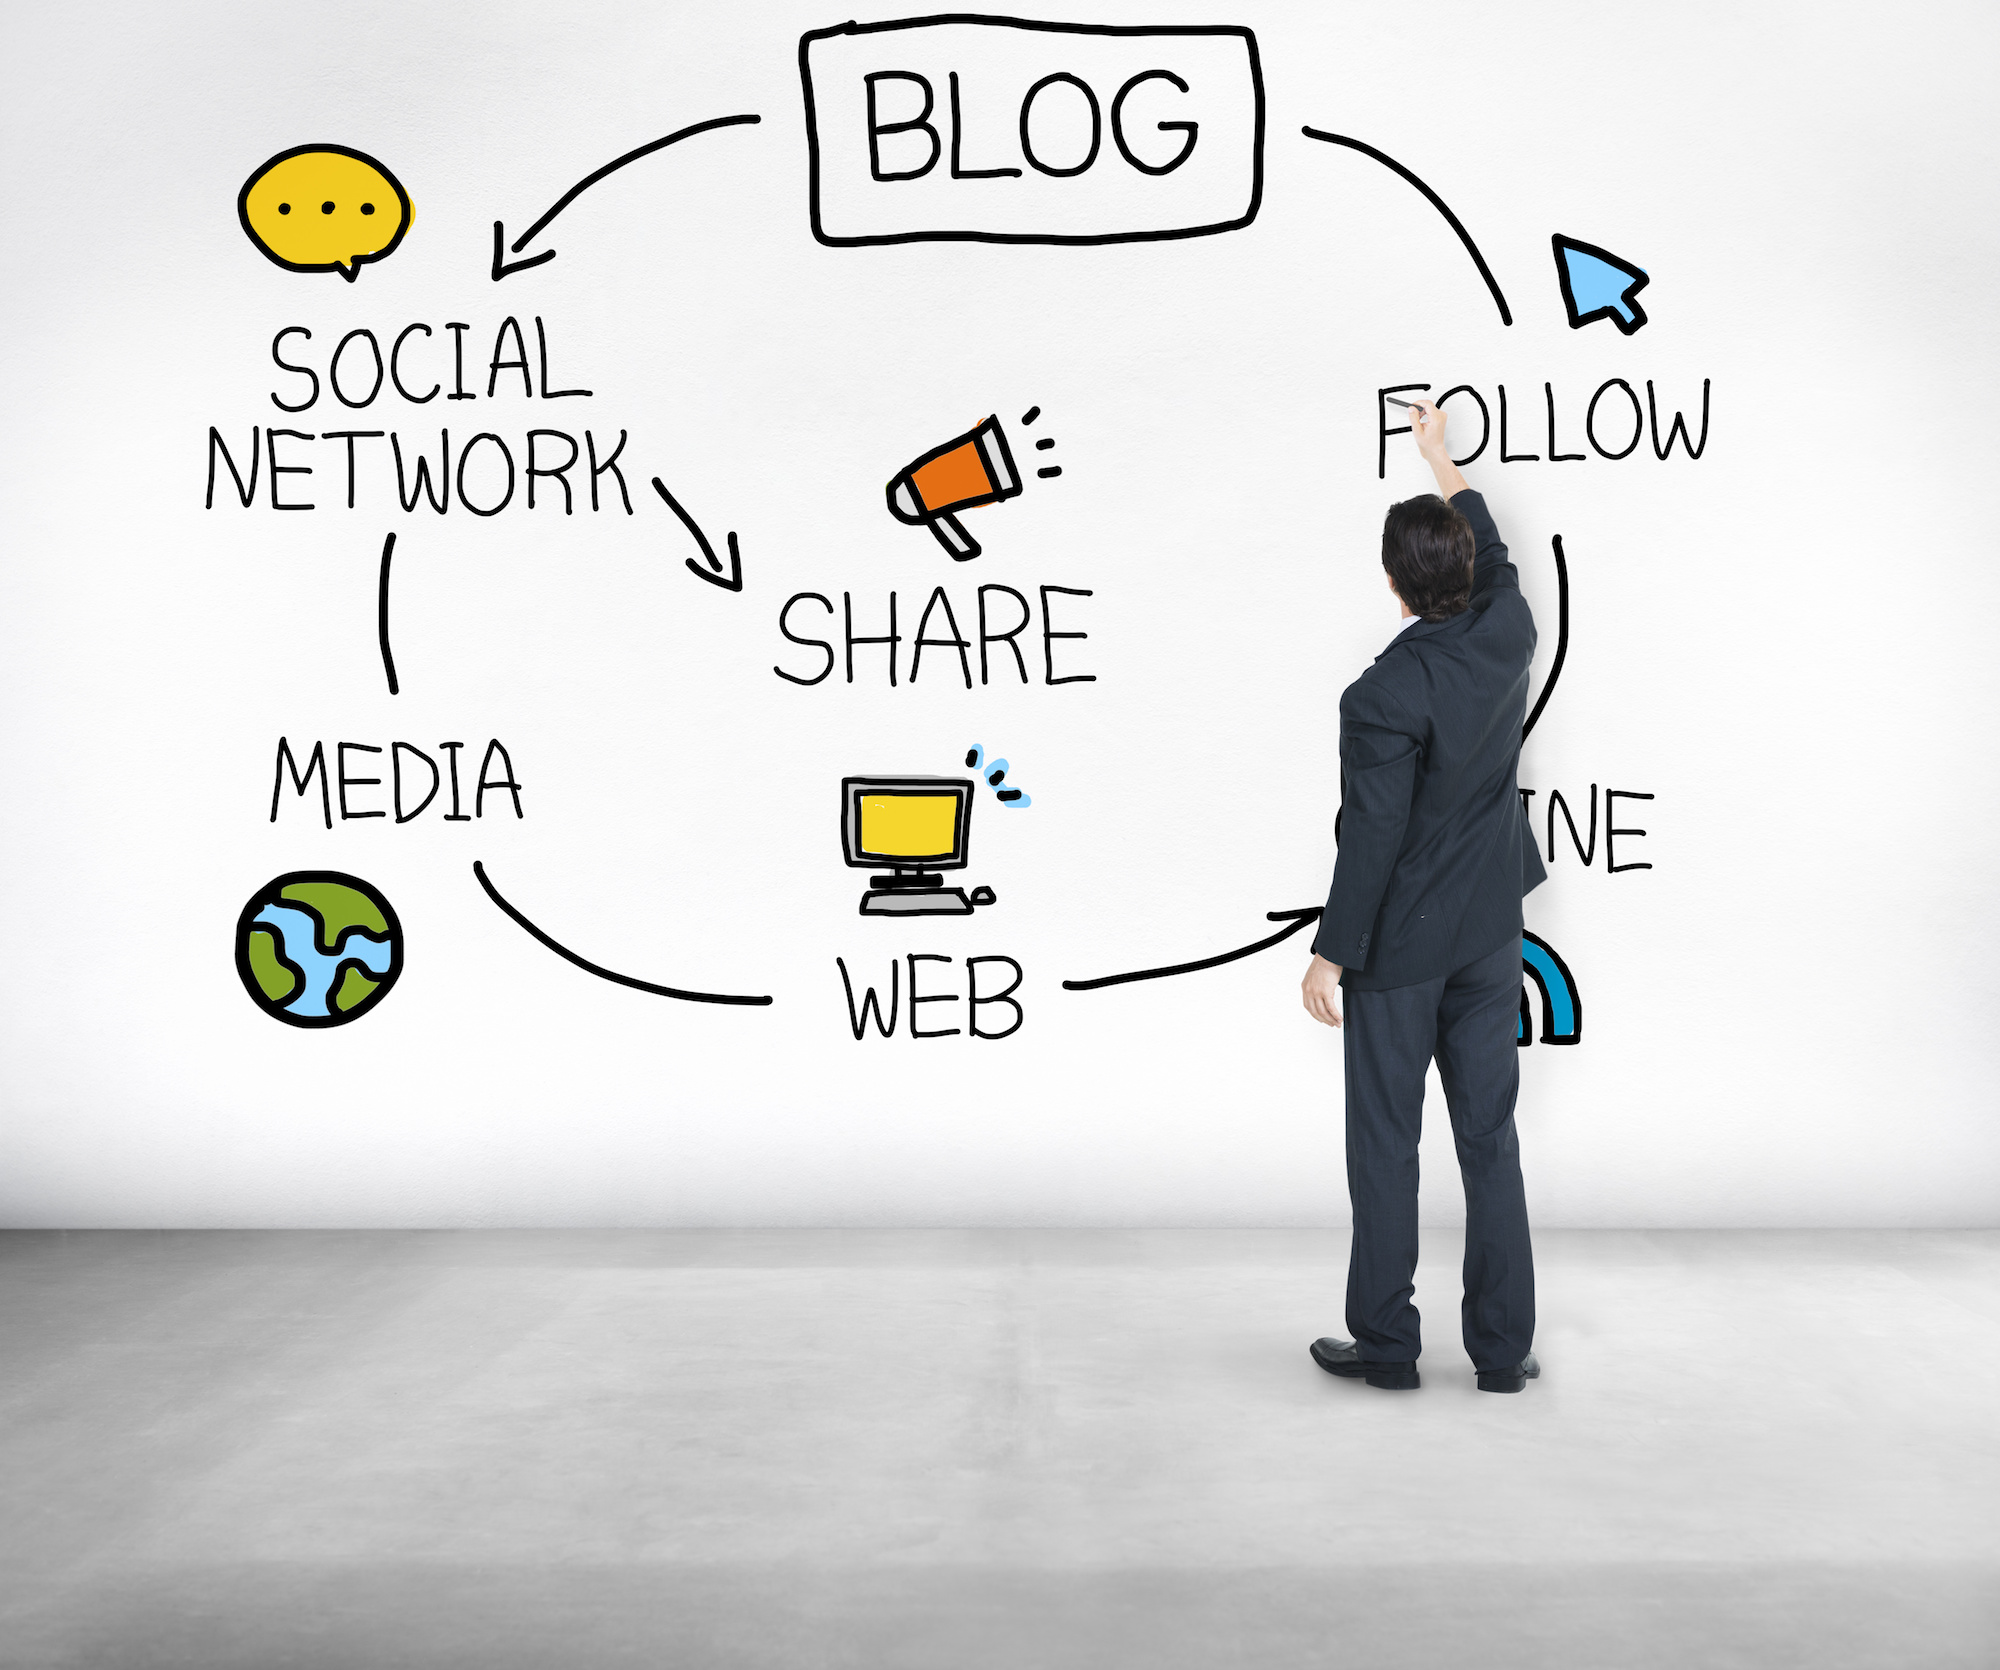 blog and media network